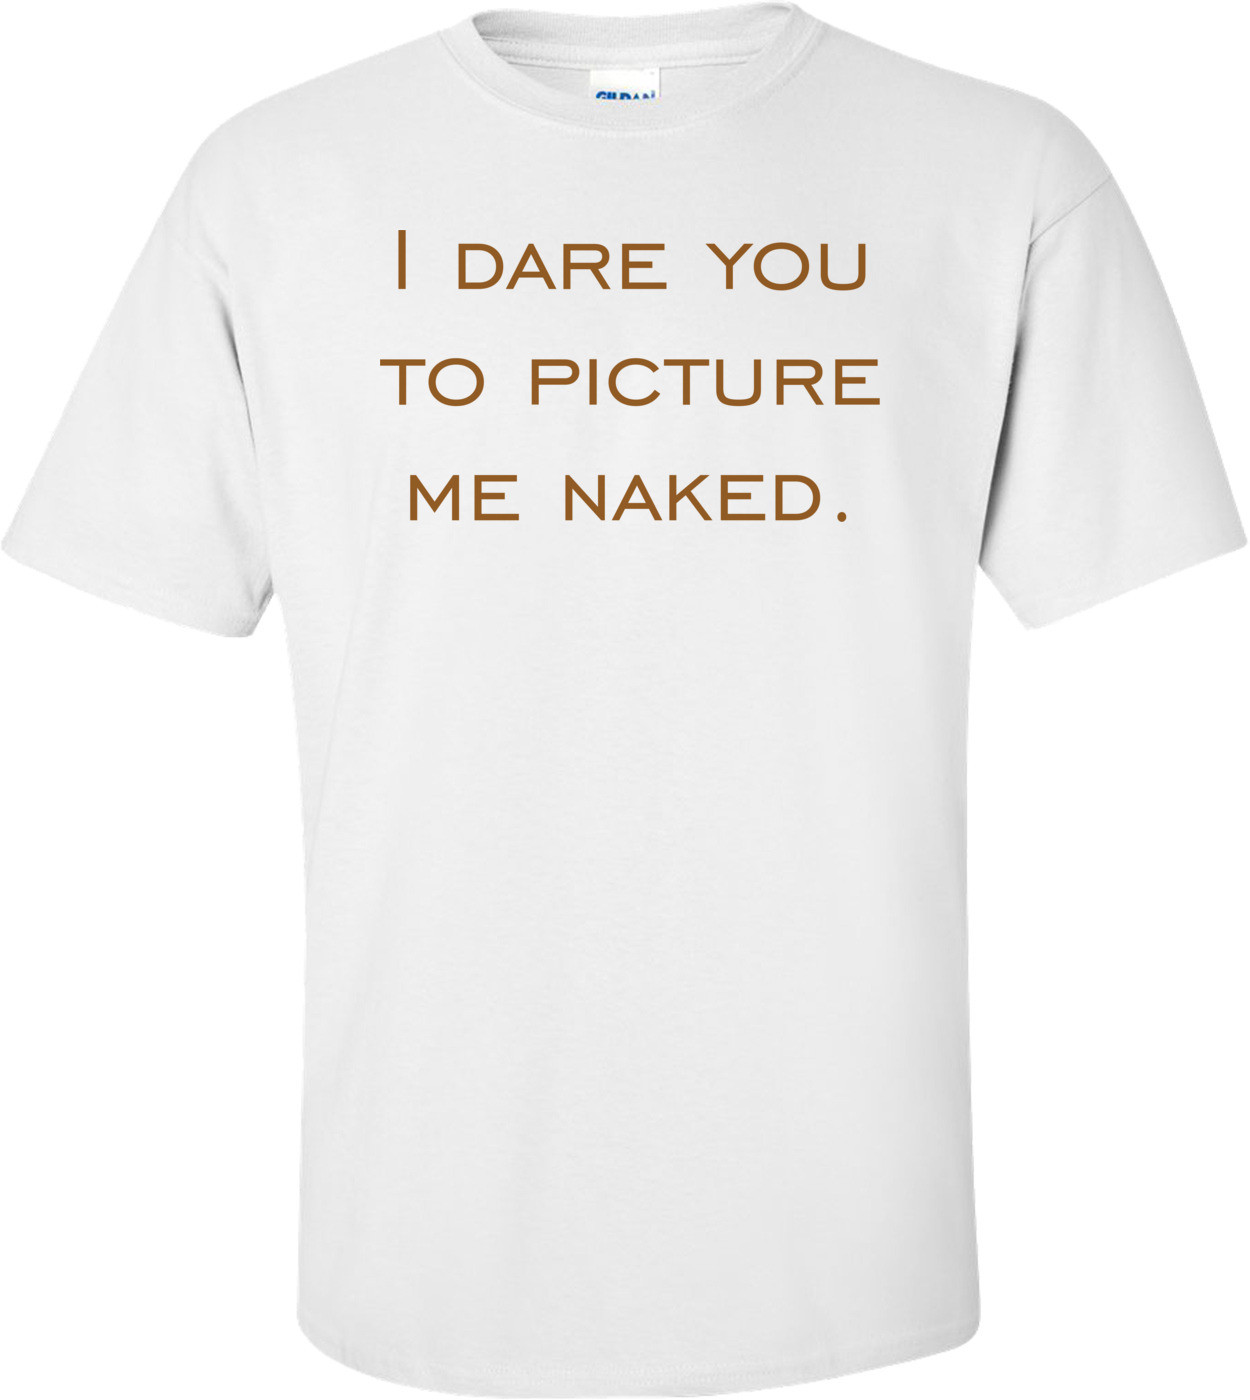 I dare you to picture me naked. Shirt